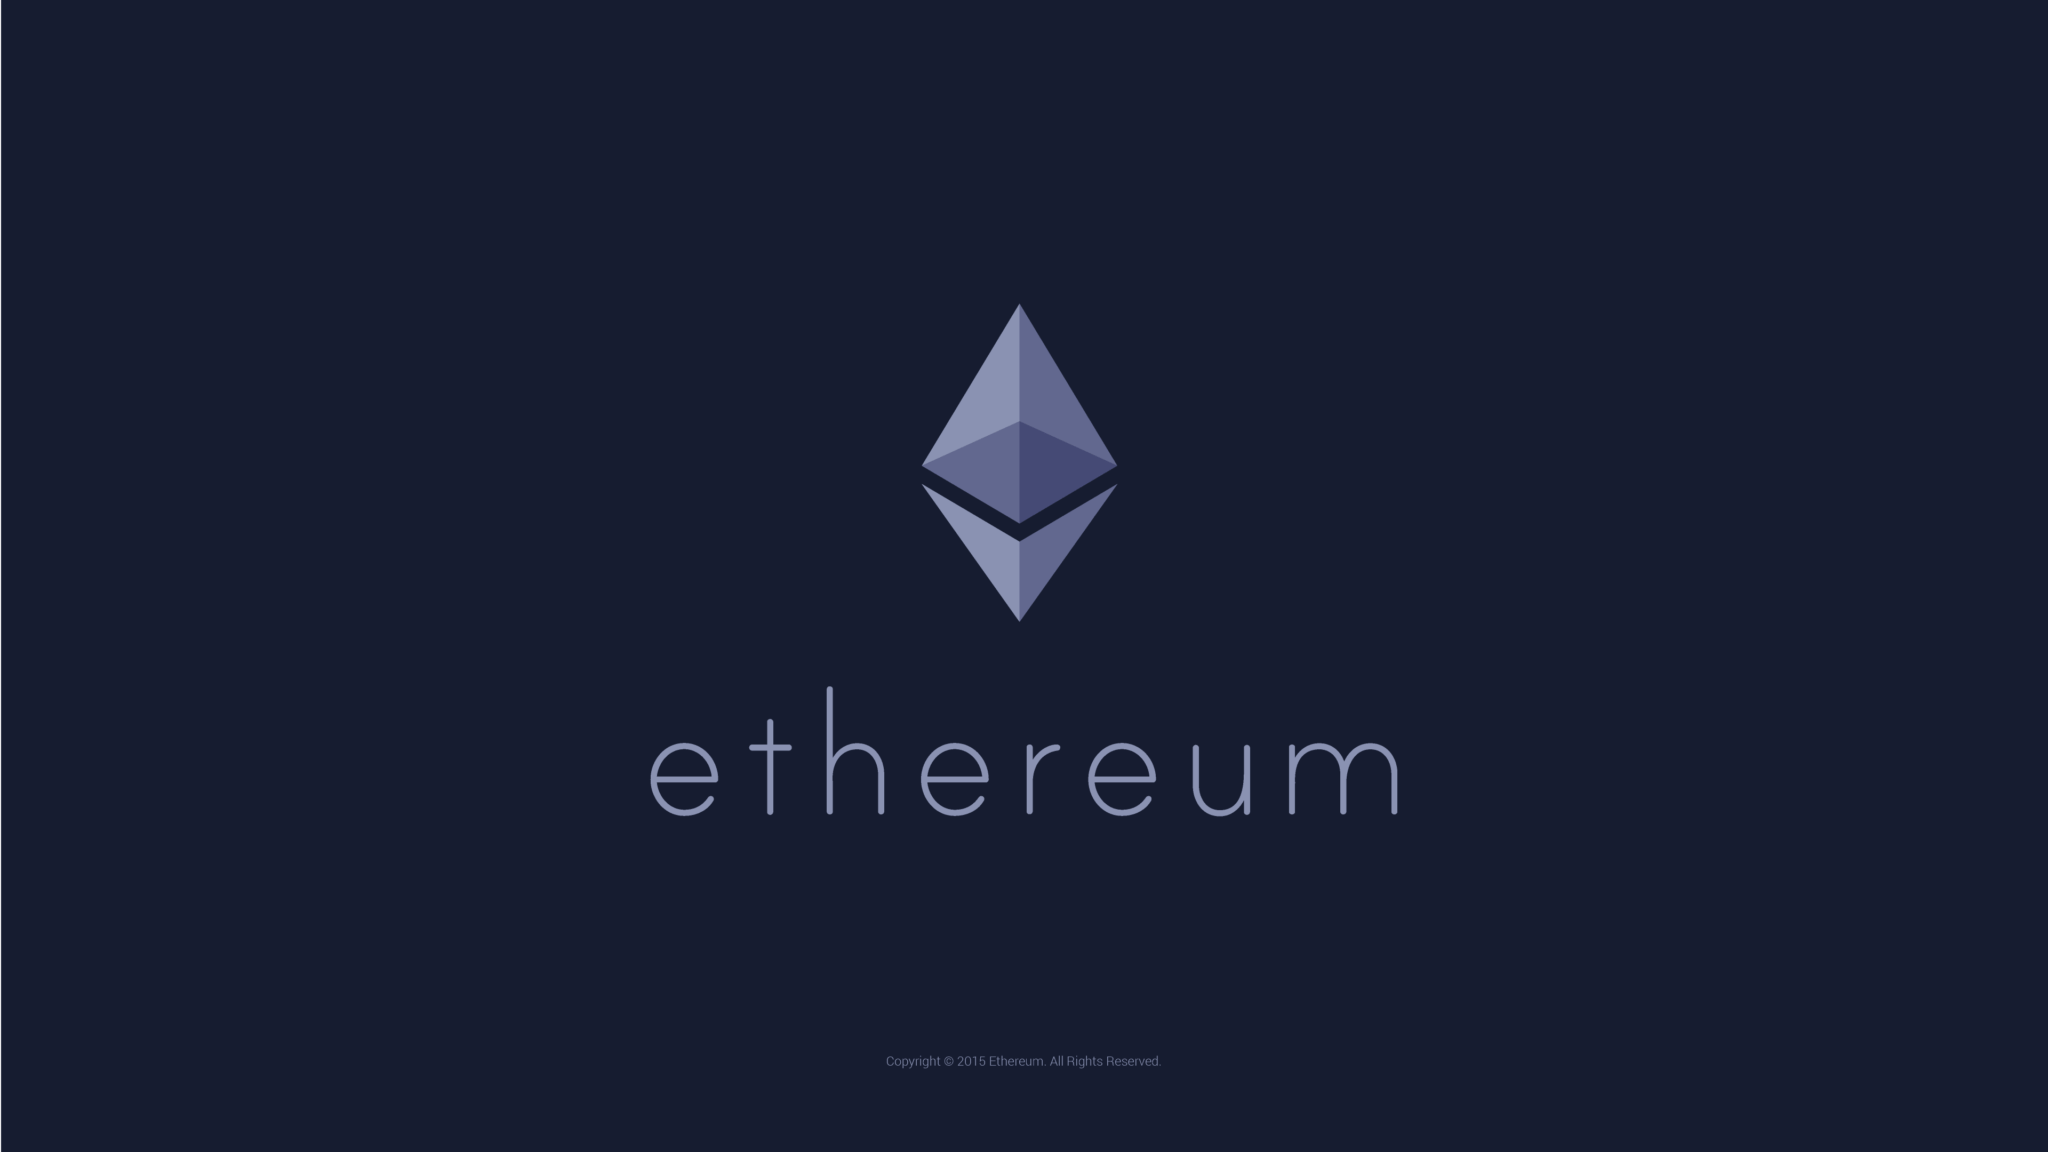 ethereumpic1